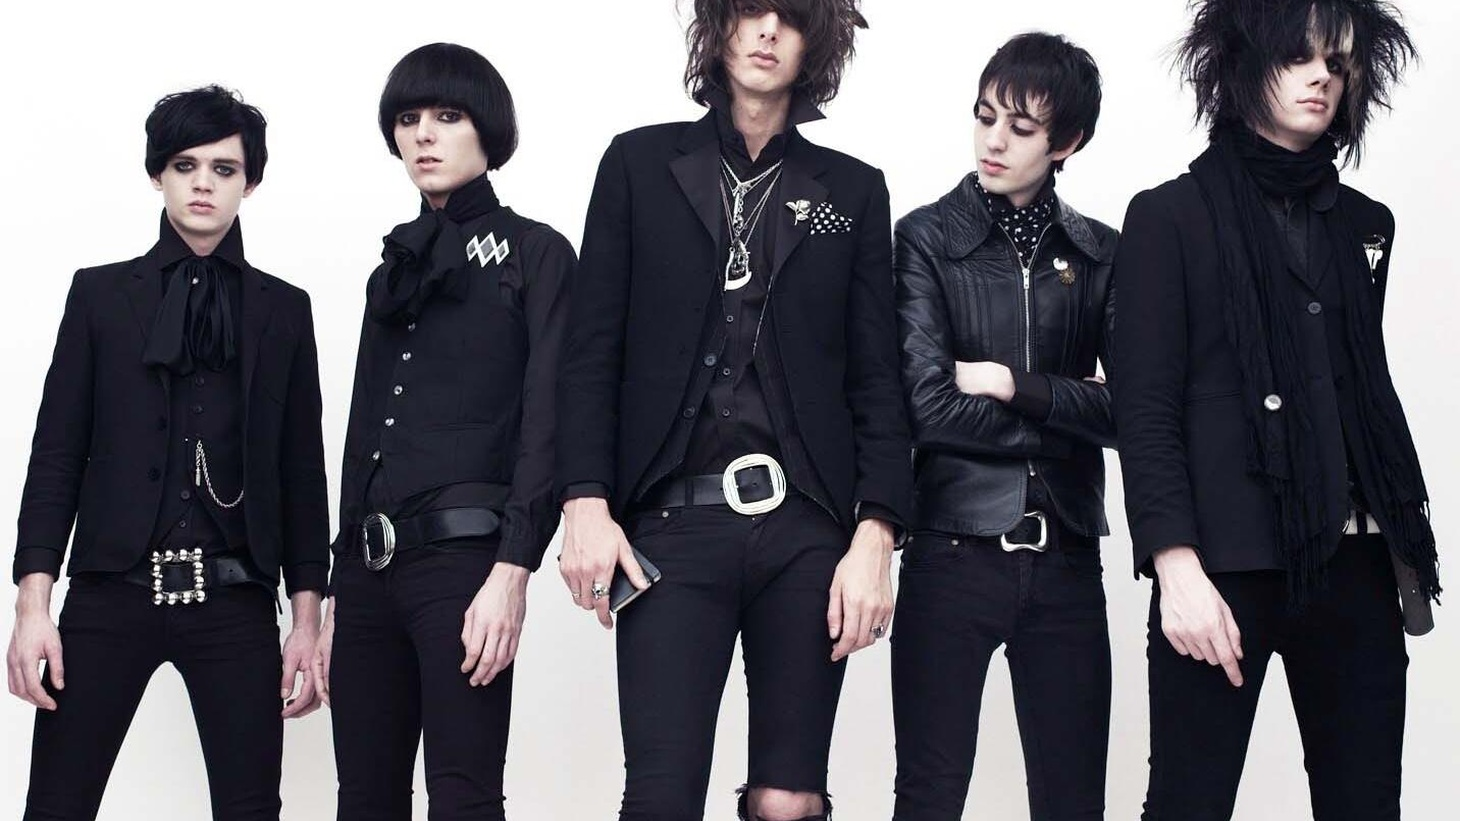 The Horrors expose their dreamy Goth songs on Morning Becomes Eclectic at 11:15am.